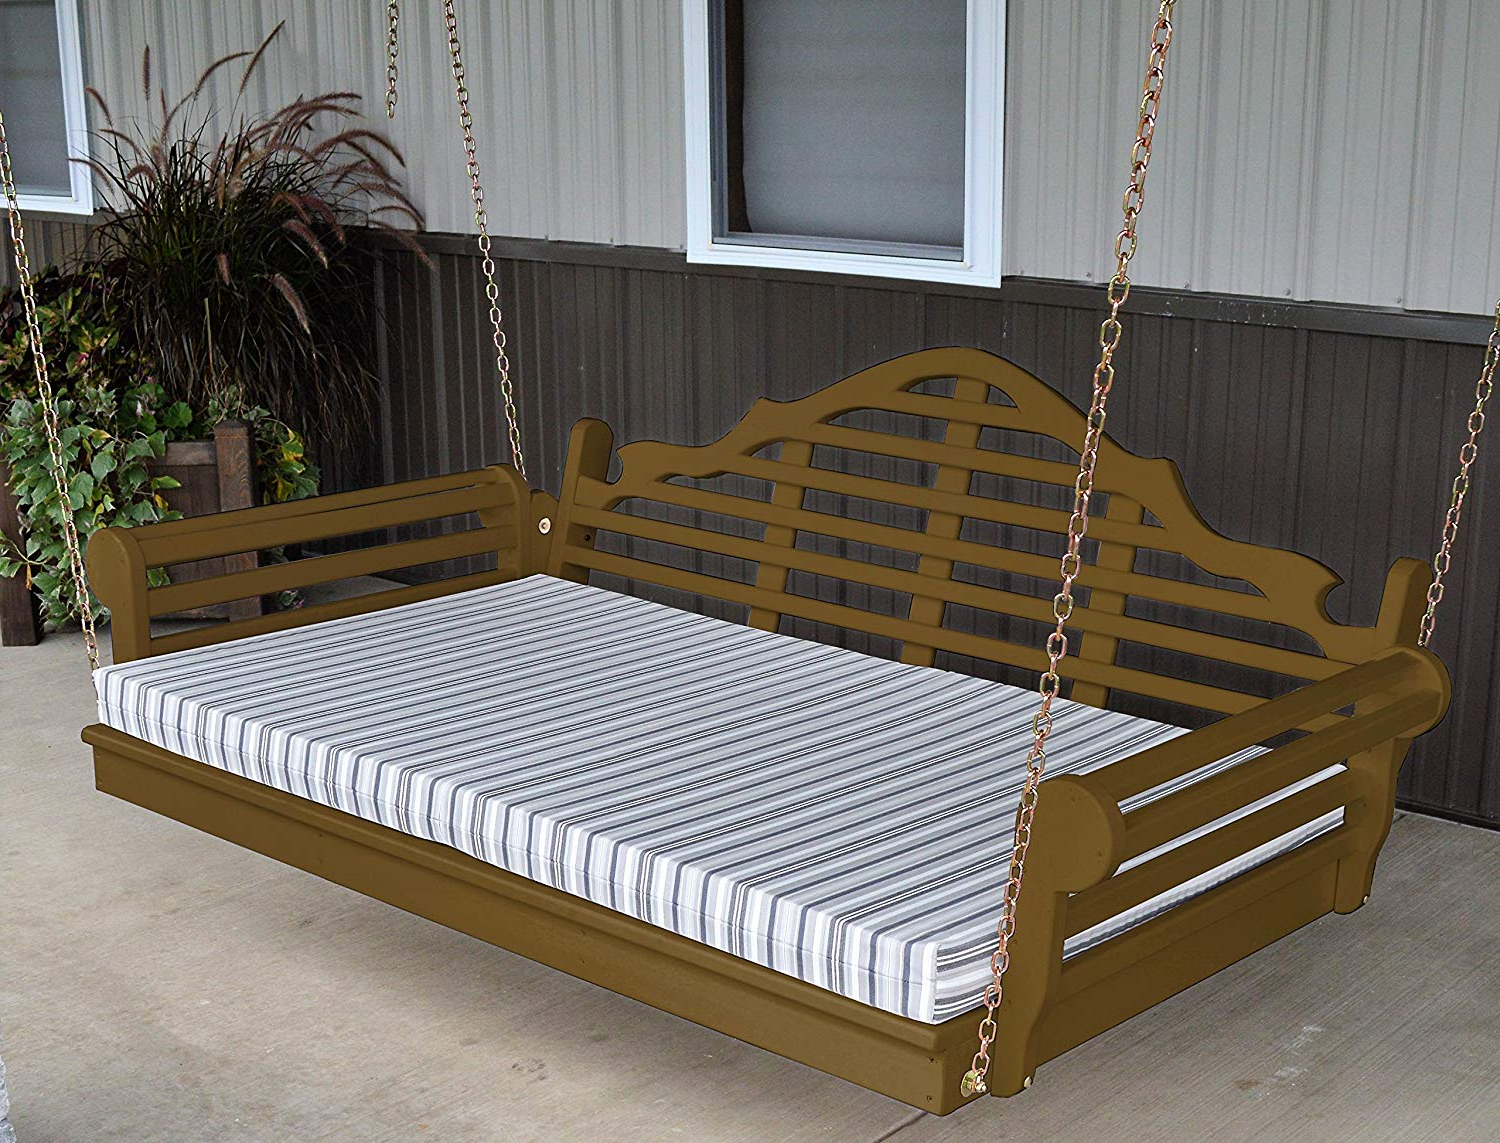 Day Bed Porch Swings Throughout Most Up To Date Amazon : Aspen Tree Interiors 6' Porch Swing Bed (View 28 of 30)